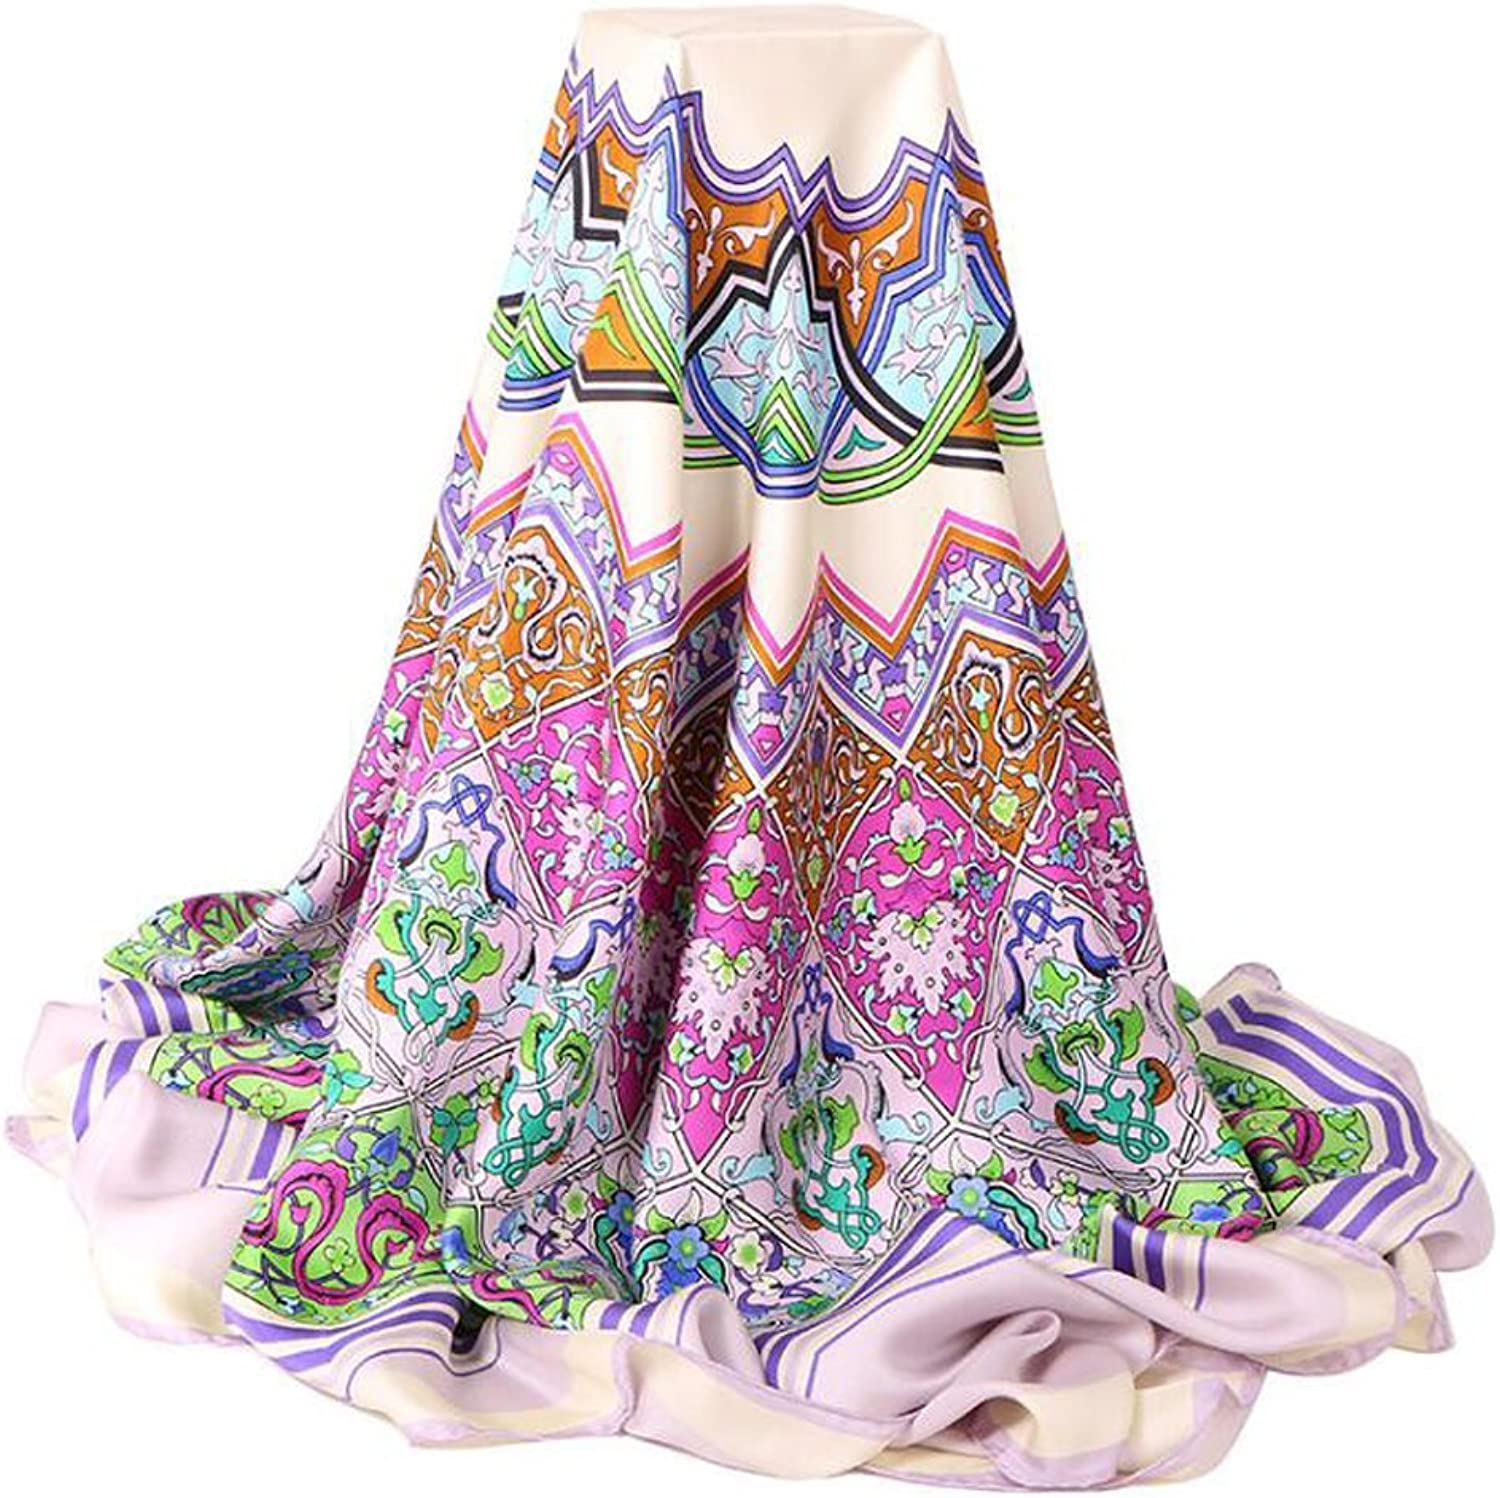 Ms. Fashion 100% Silk Scarves Spring And Summer Sun Scarf